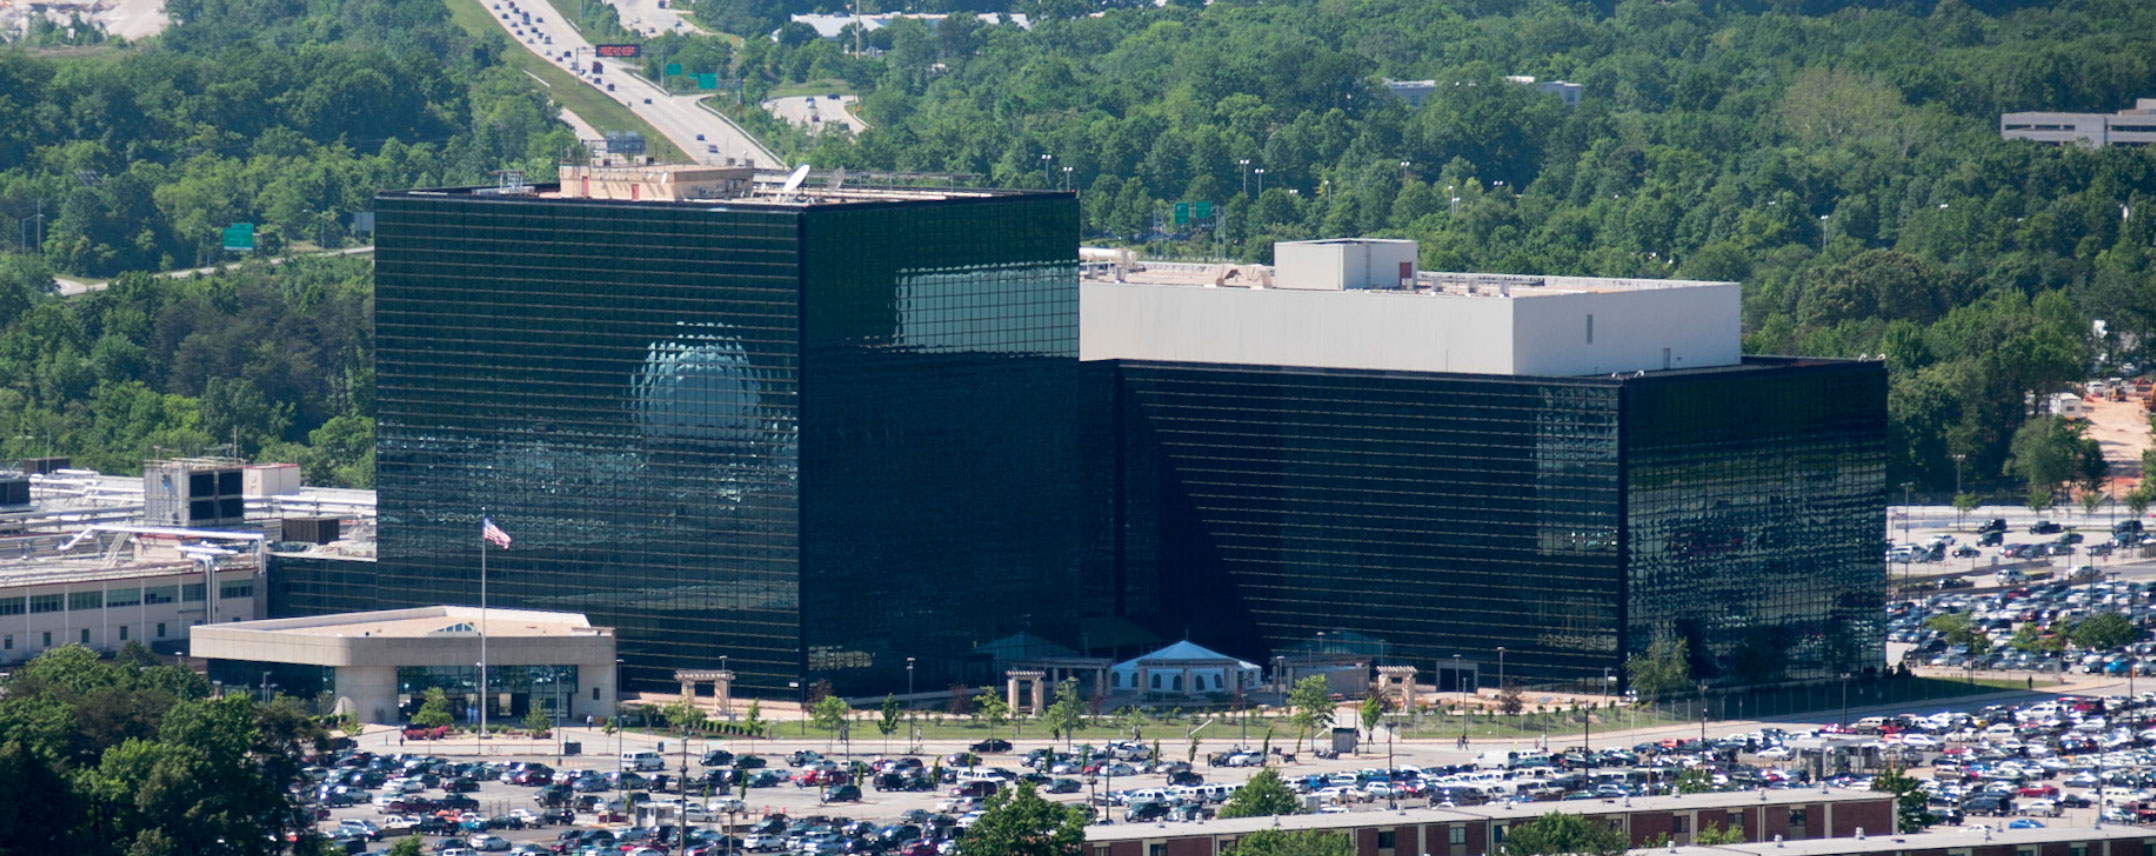 The US National Security Agency is one organization that benefits from being able to read unencrypted Web traffic.